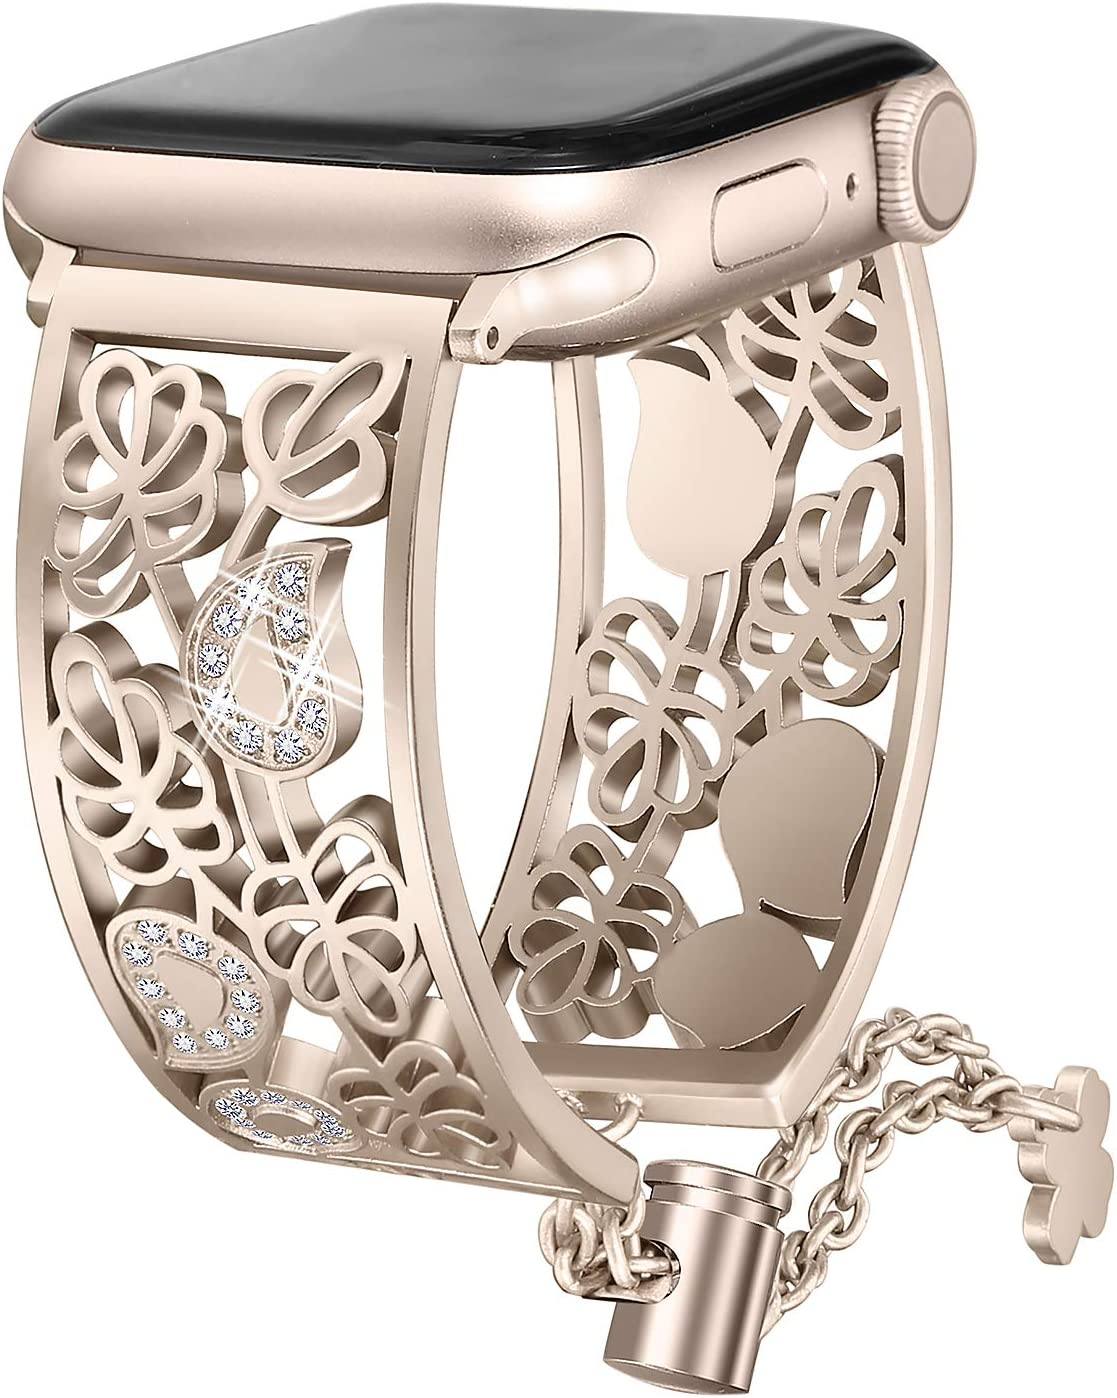 Secbolt Hollowed-out Bling Bands Compatible Apple Watch Band 38mm 40mm iWatch Series 6 5 4 3 2 1 SE Diamond Rhinestone Stainless Steel Jewelry Dressy Bangle, Champagne Gold